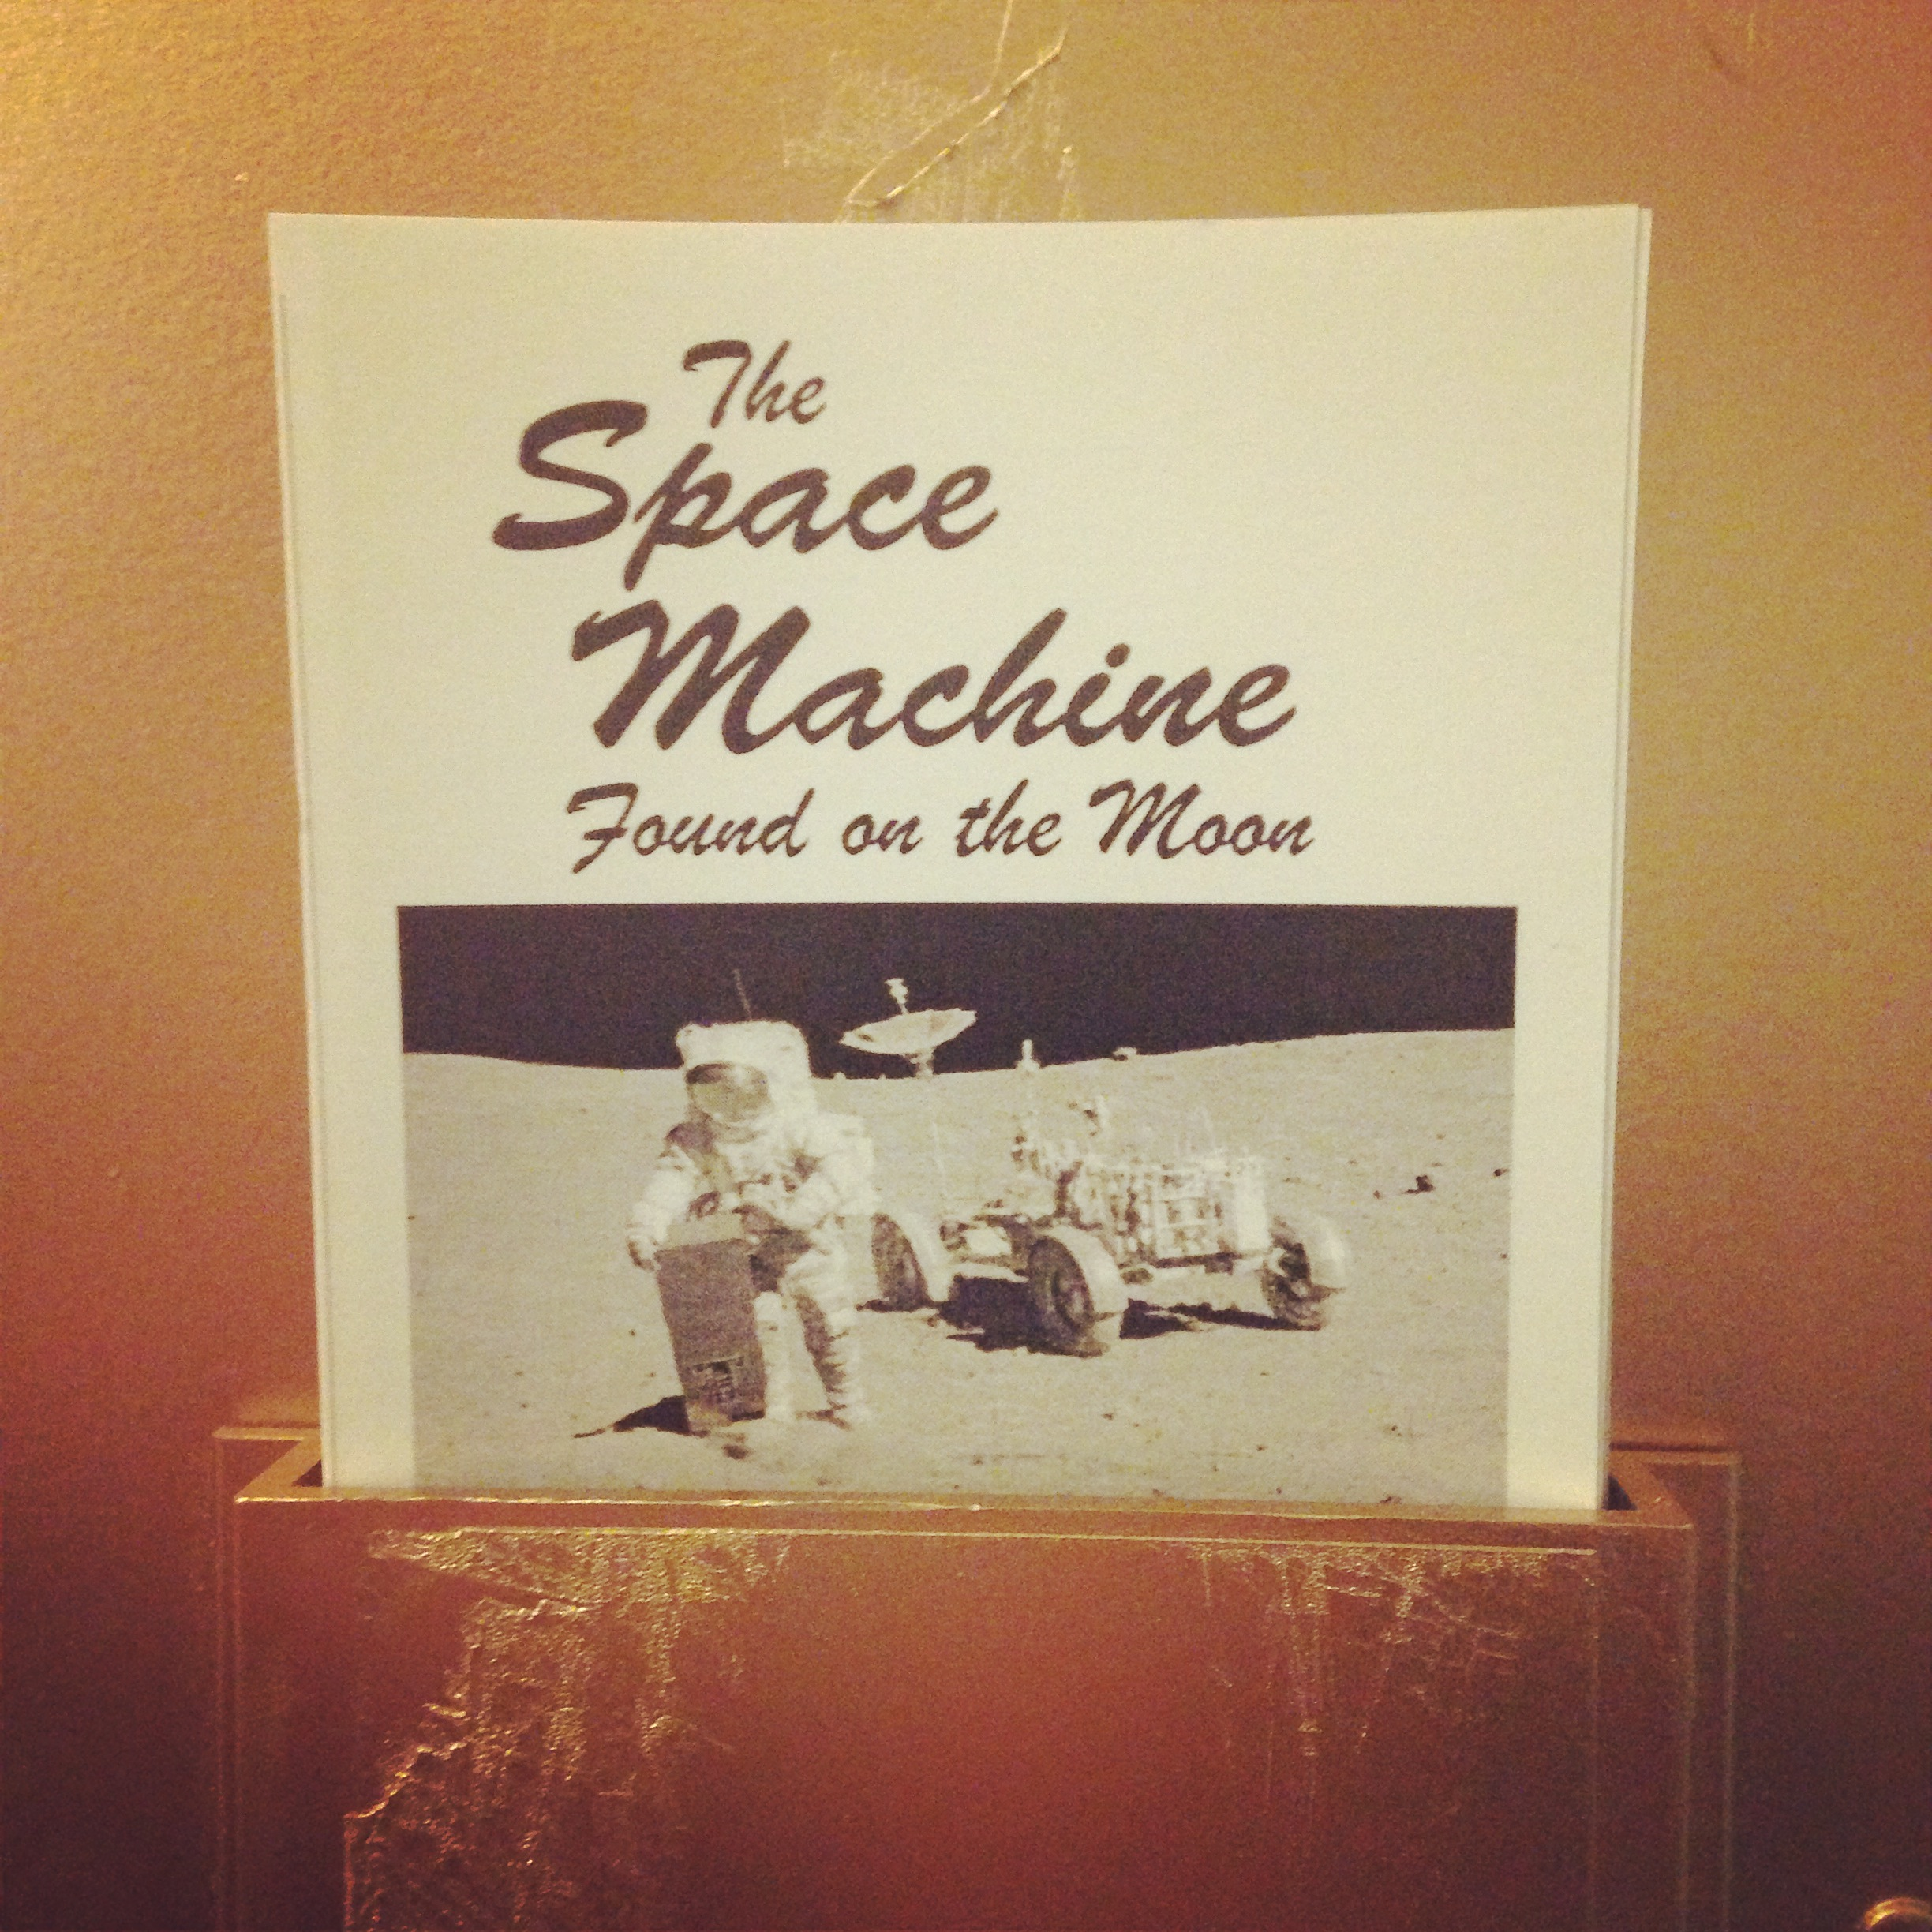 SPACE MACHINE FOUND ON THE MOON